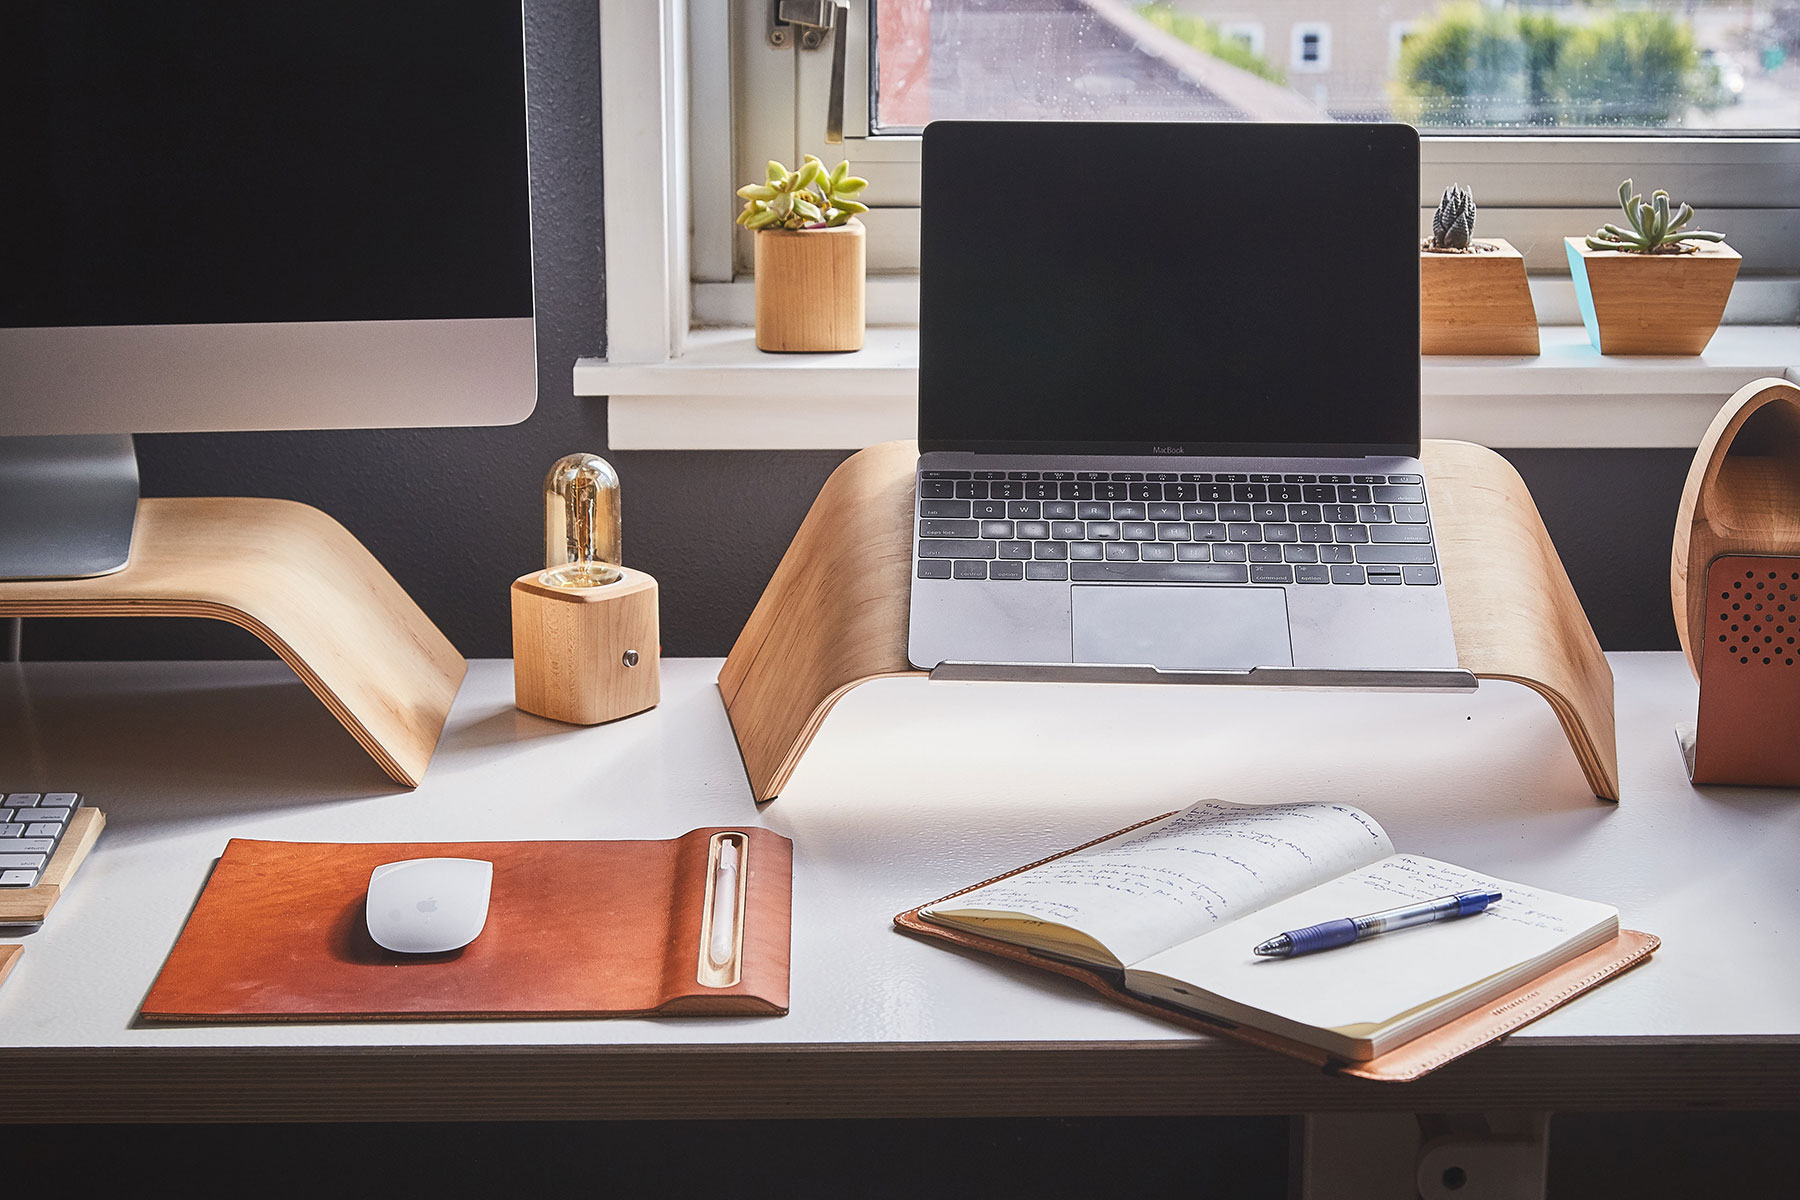 Remote working tips: Invest in the idea of desk feng shui